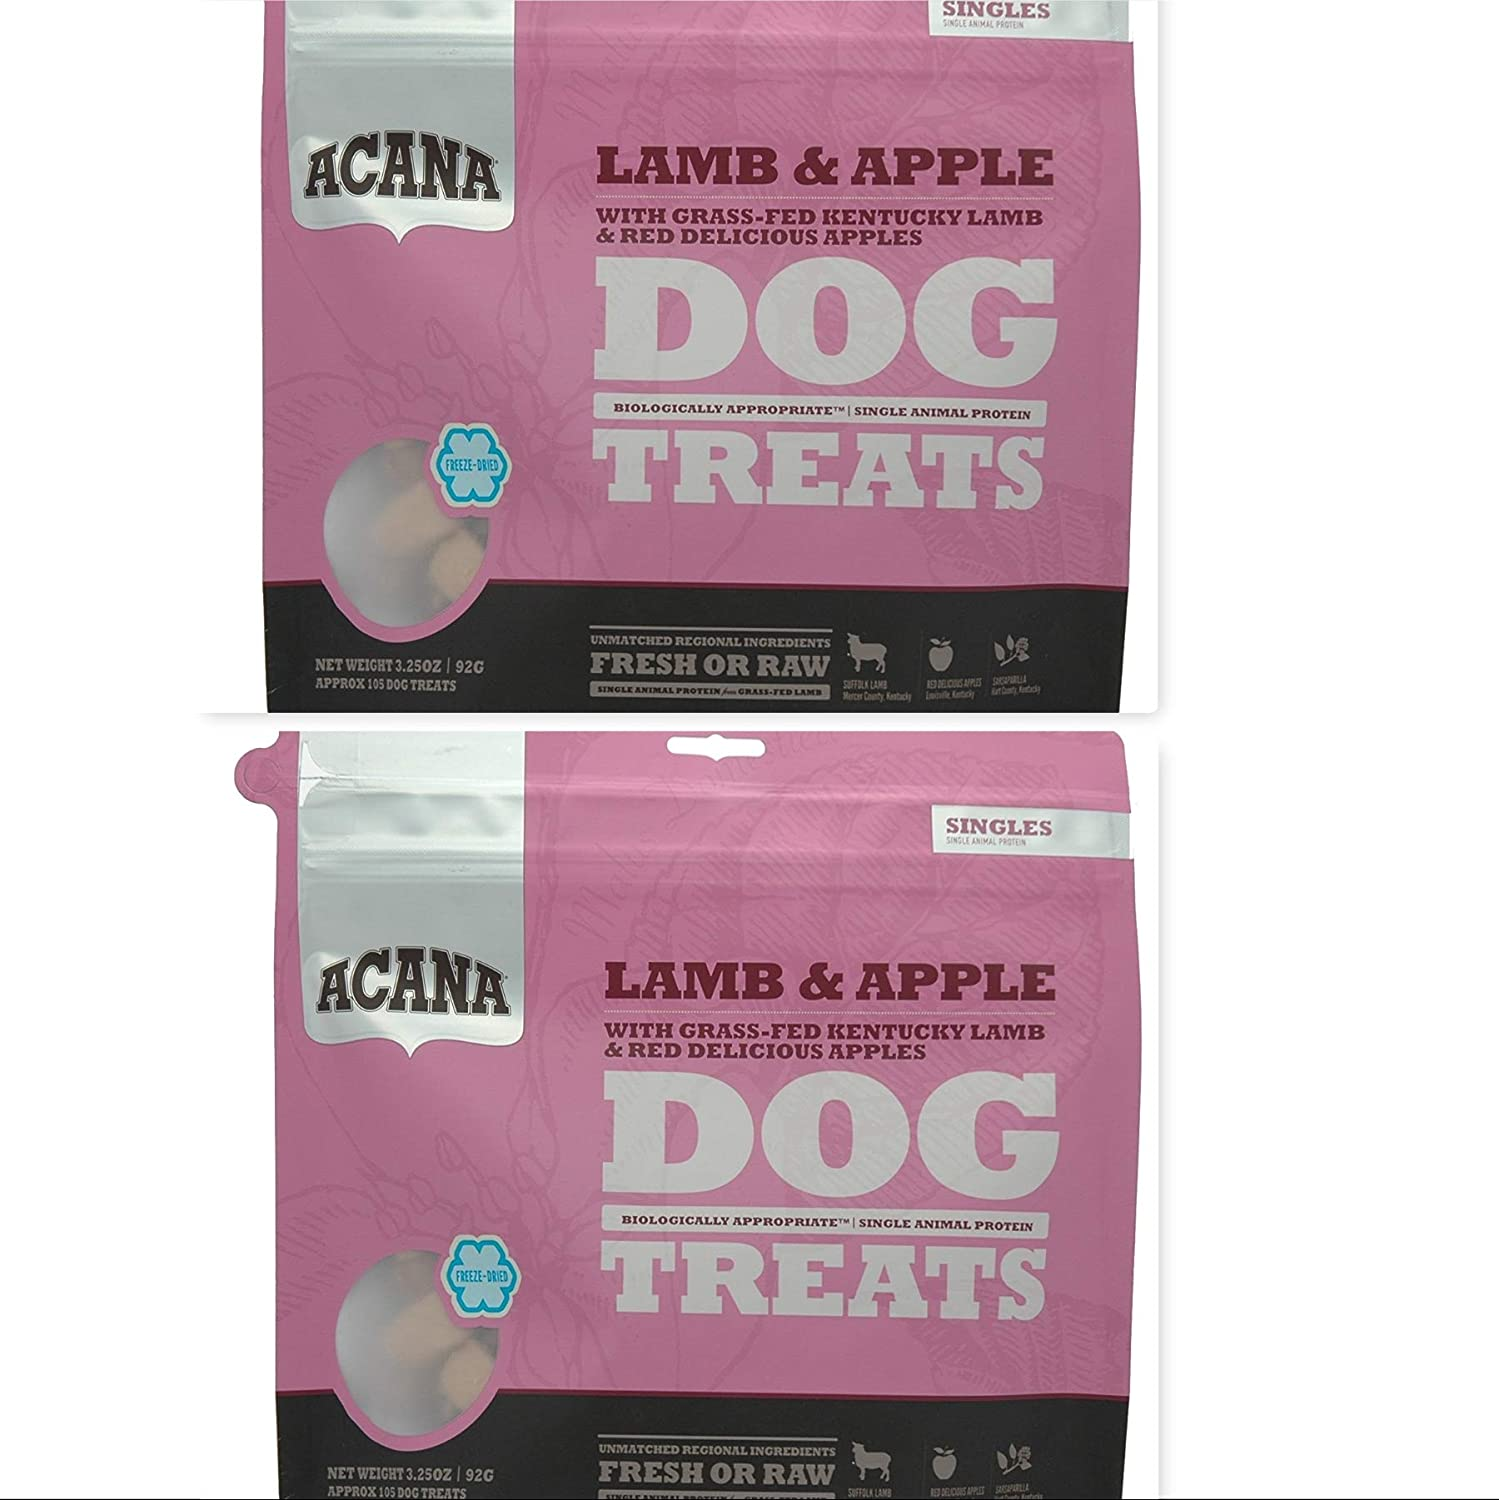 2 Pack of Acana Lamb & Apple Dog Treats 3.25 OZ Ea. with Grass-FED Kentucky Lamb & RED Delicious Apple